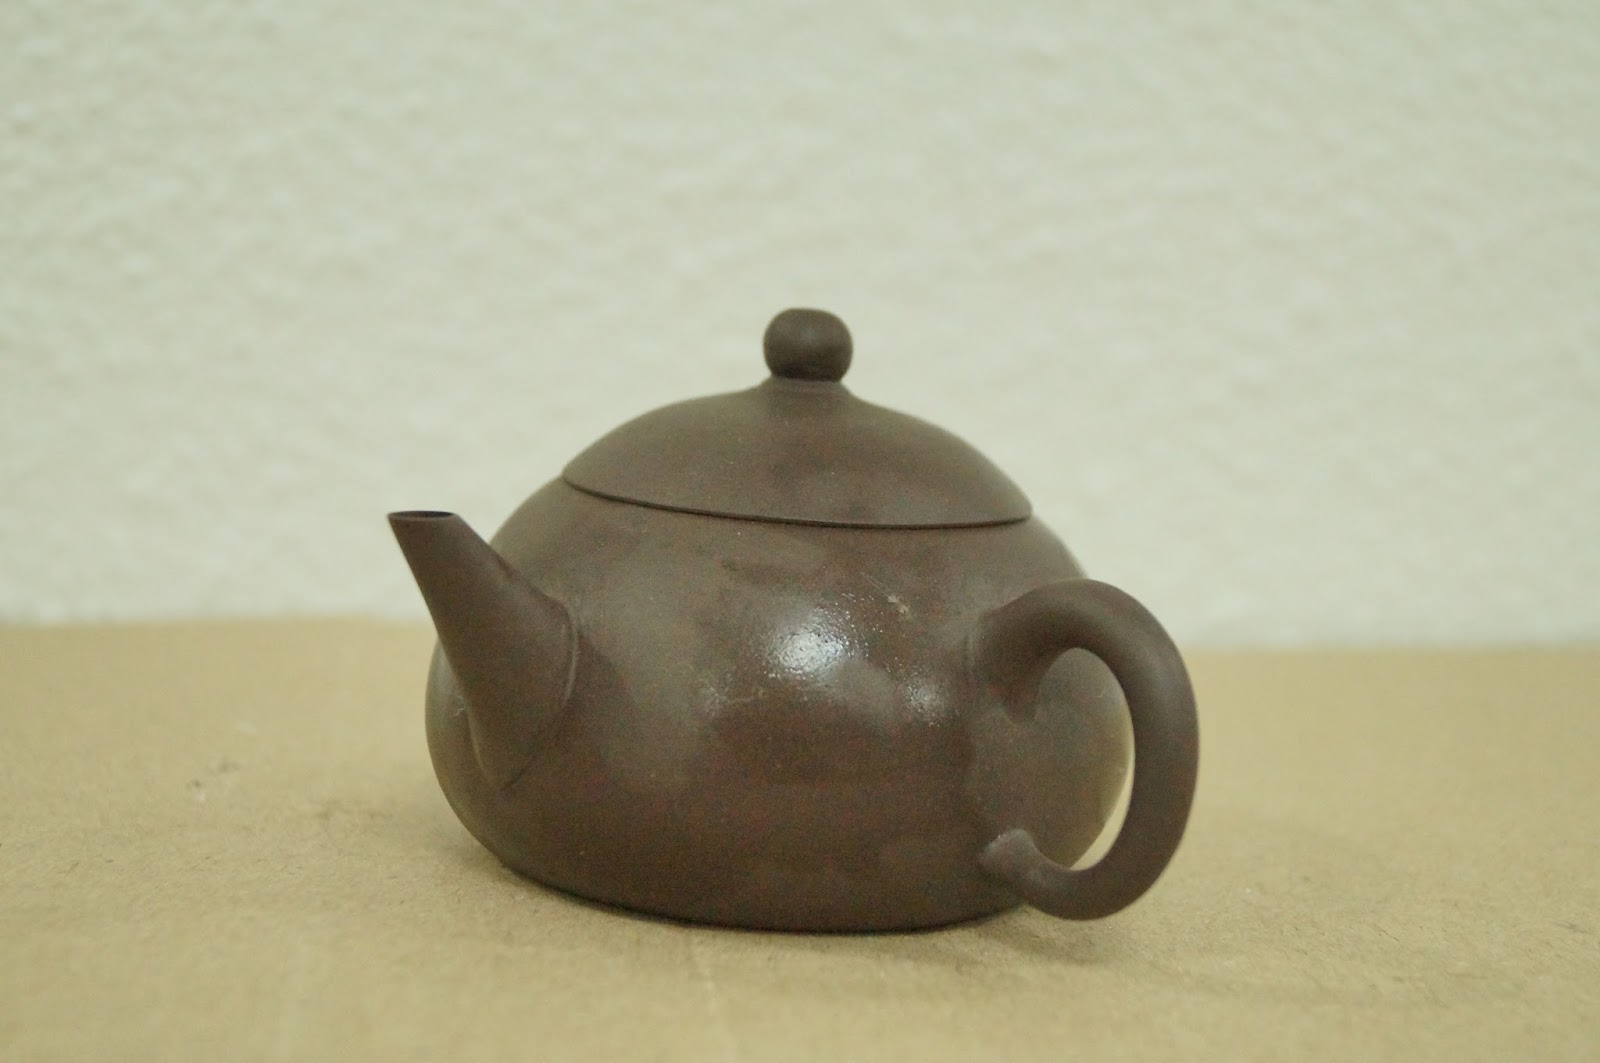 Alan 39 S Cyber Museum Teapot With Unusual Handle